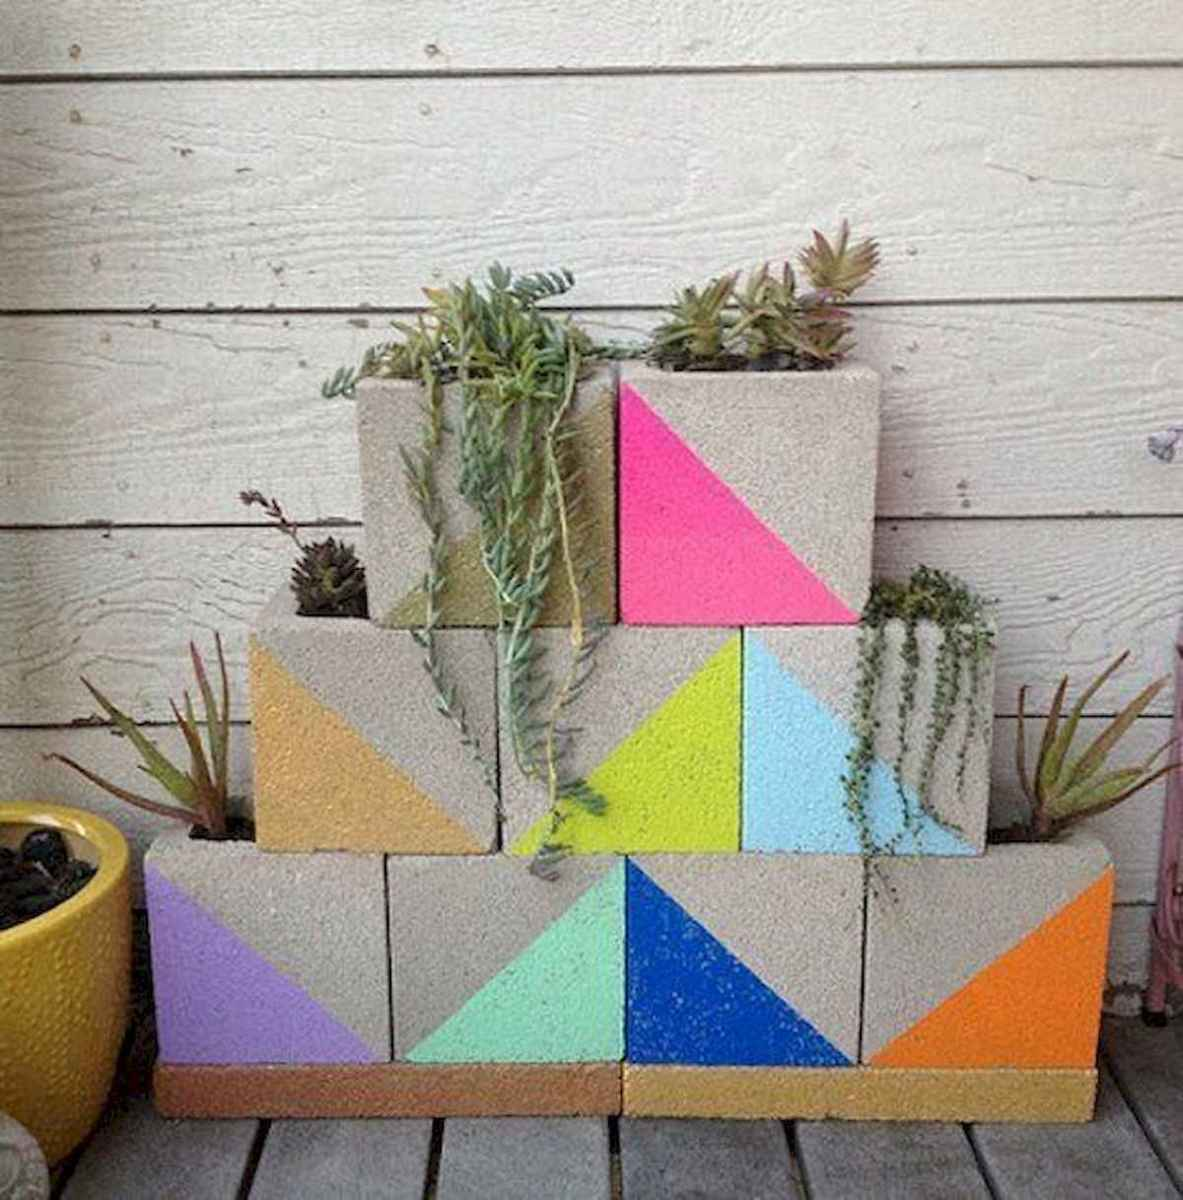 33 Awesome DIY Painted Garden Decoration Ideas for a Colorful Yard (30)